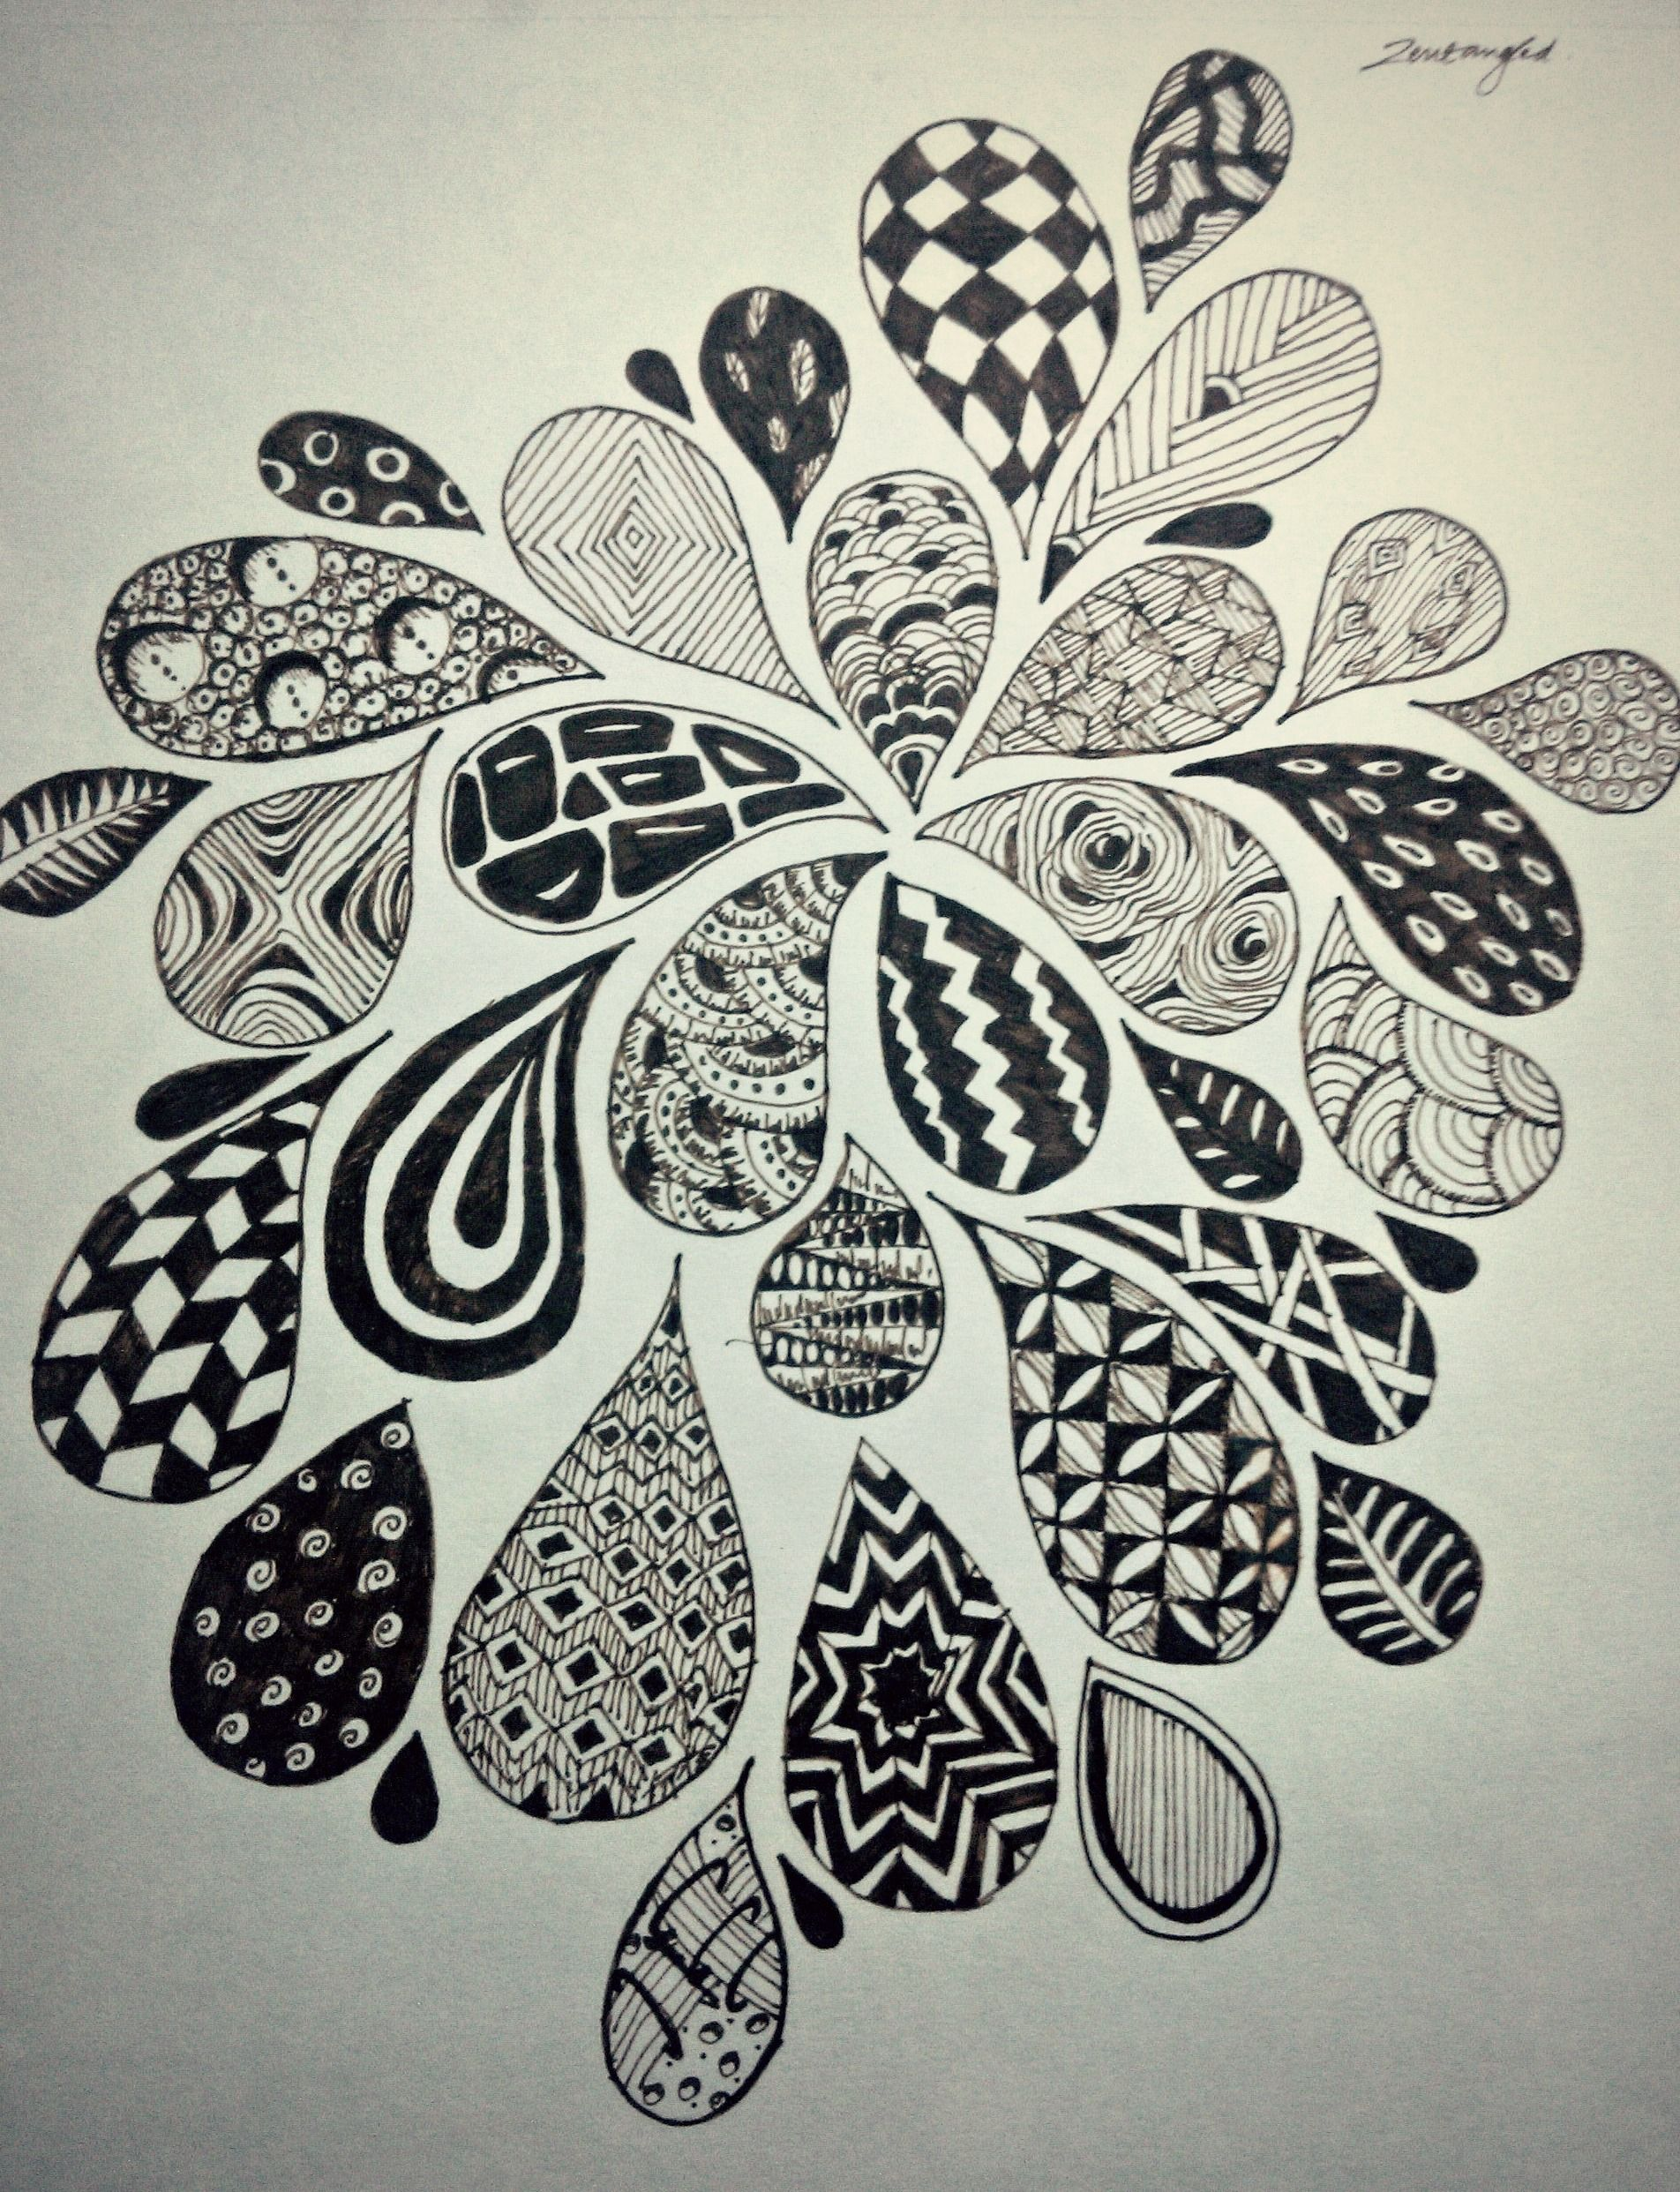 Flower burst zen drawing inspiration pinterest for What to draw inspiration